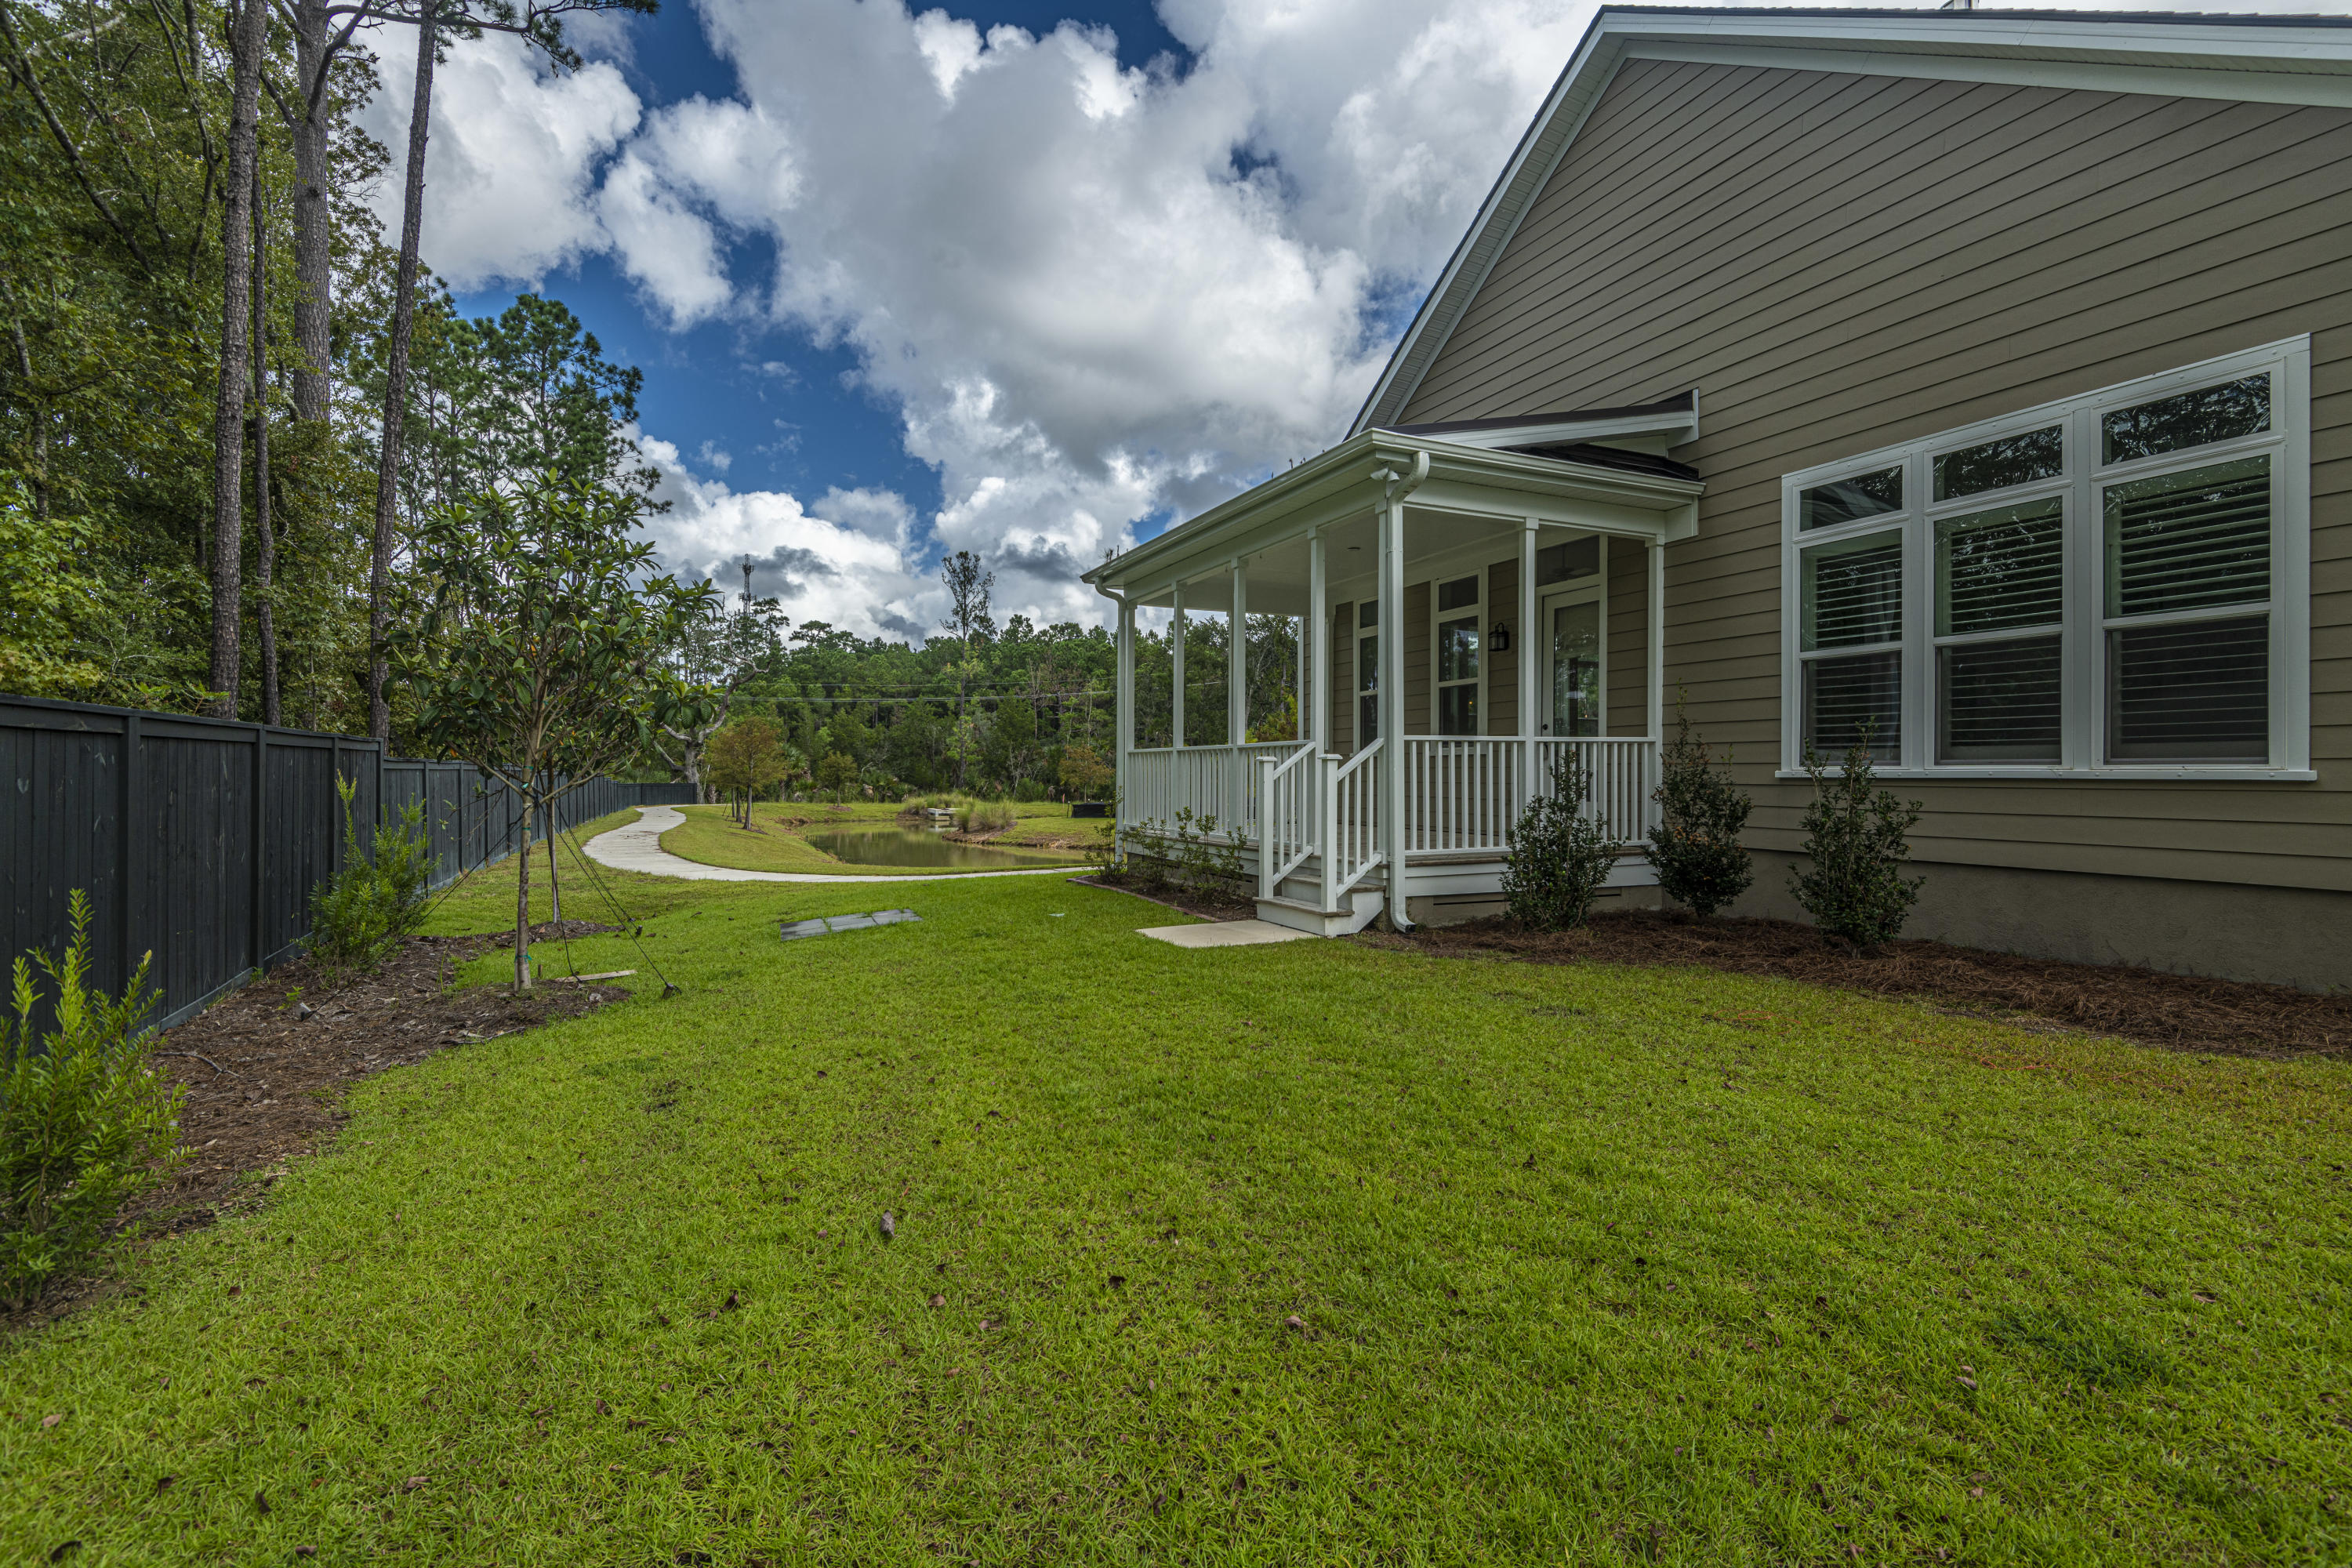 Dunes West Homes For Sale - 2854 Dragonfly Circle, Mount Pleasant, SC - 2